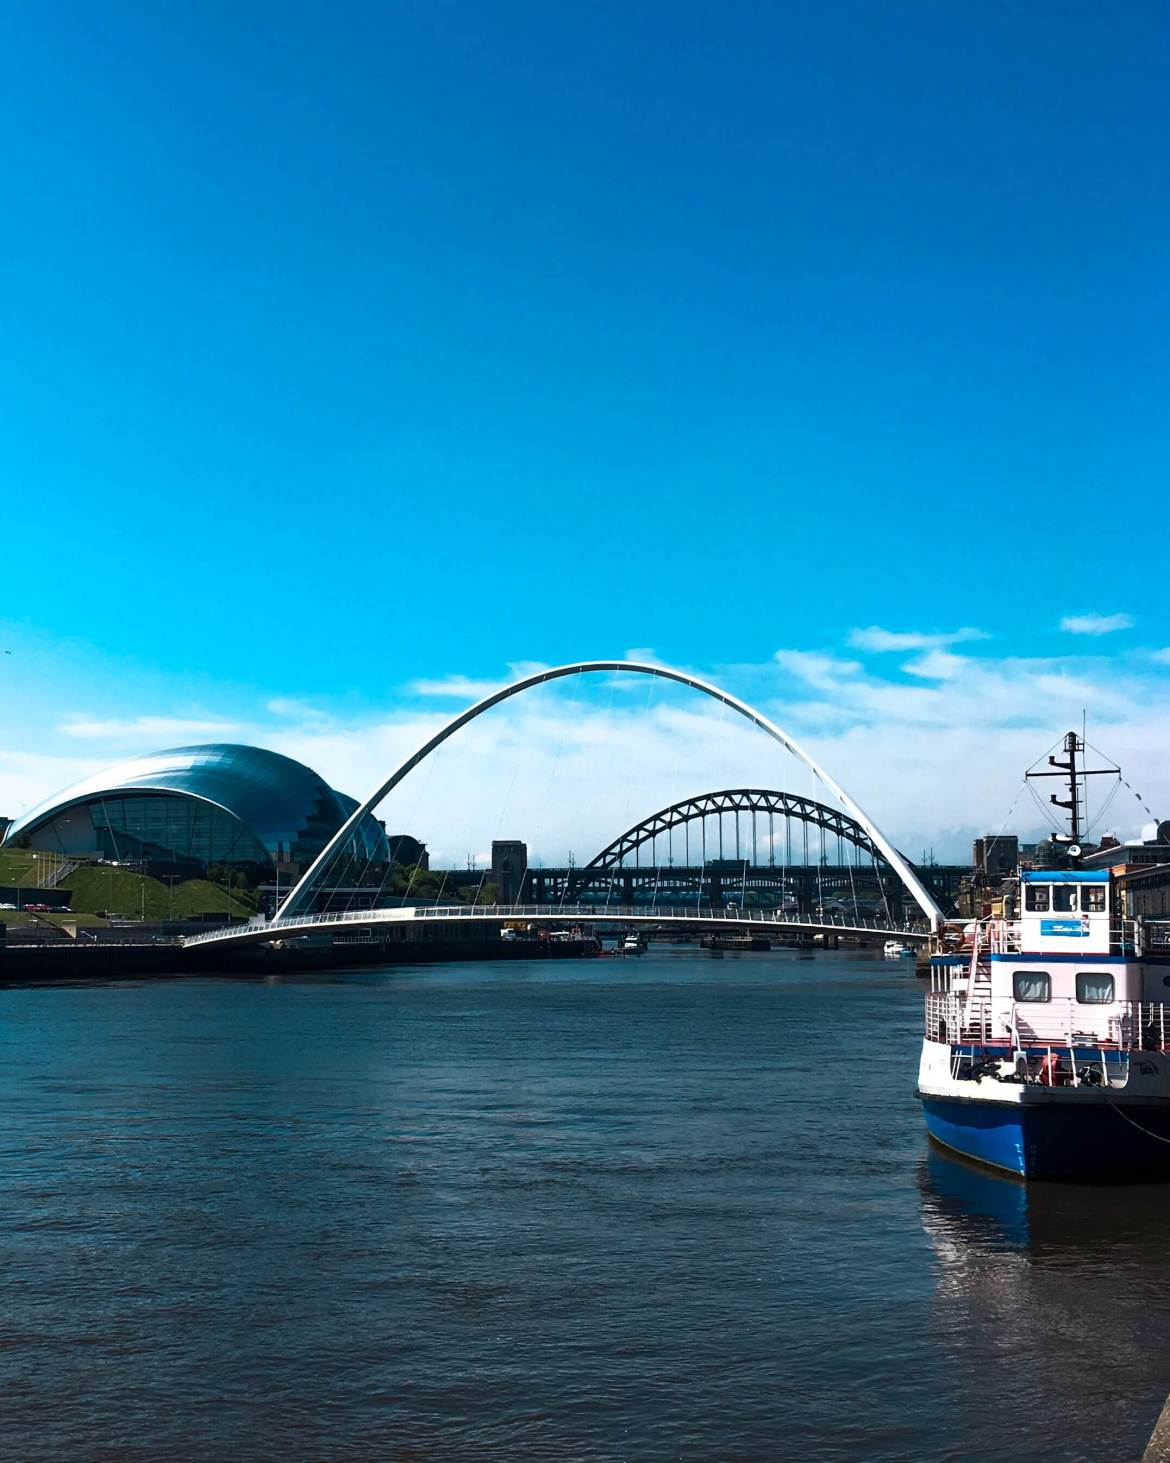 Hadrian's Wall Path runs through Newcastle Upon Tyne, United Kingdom